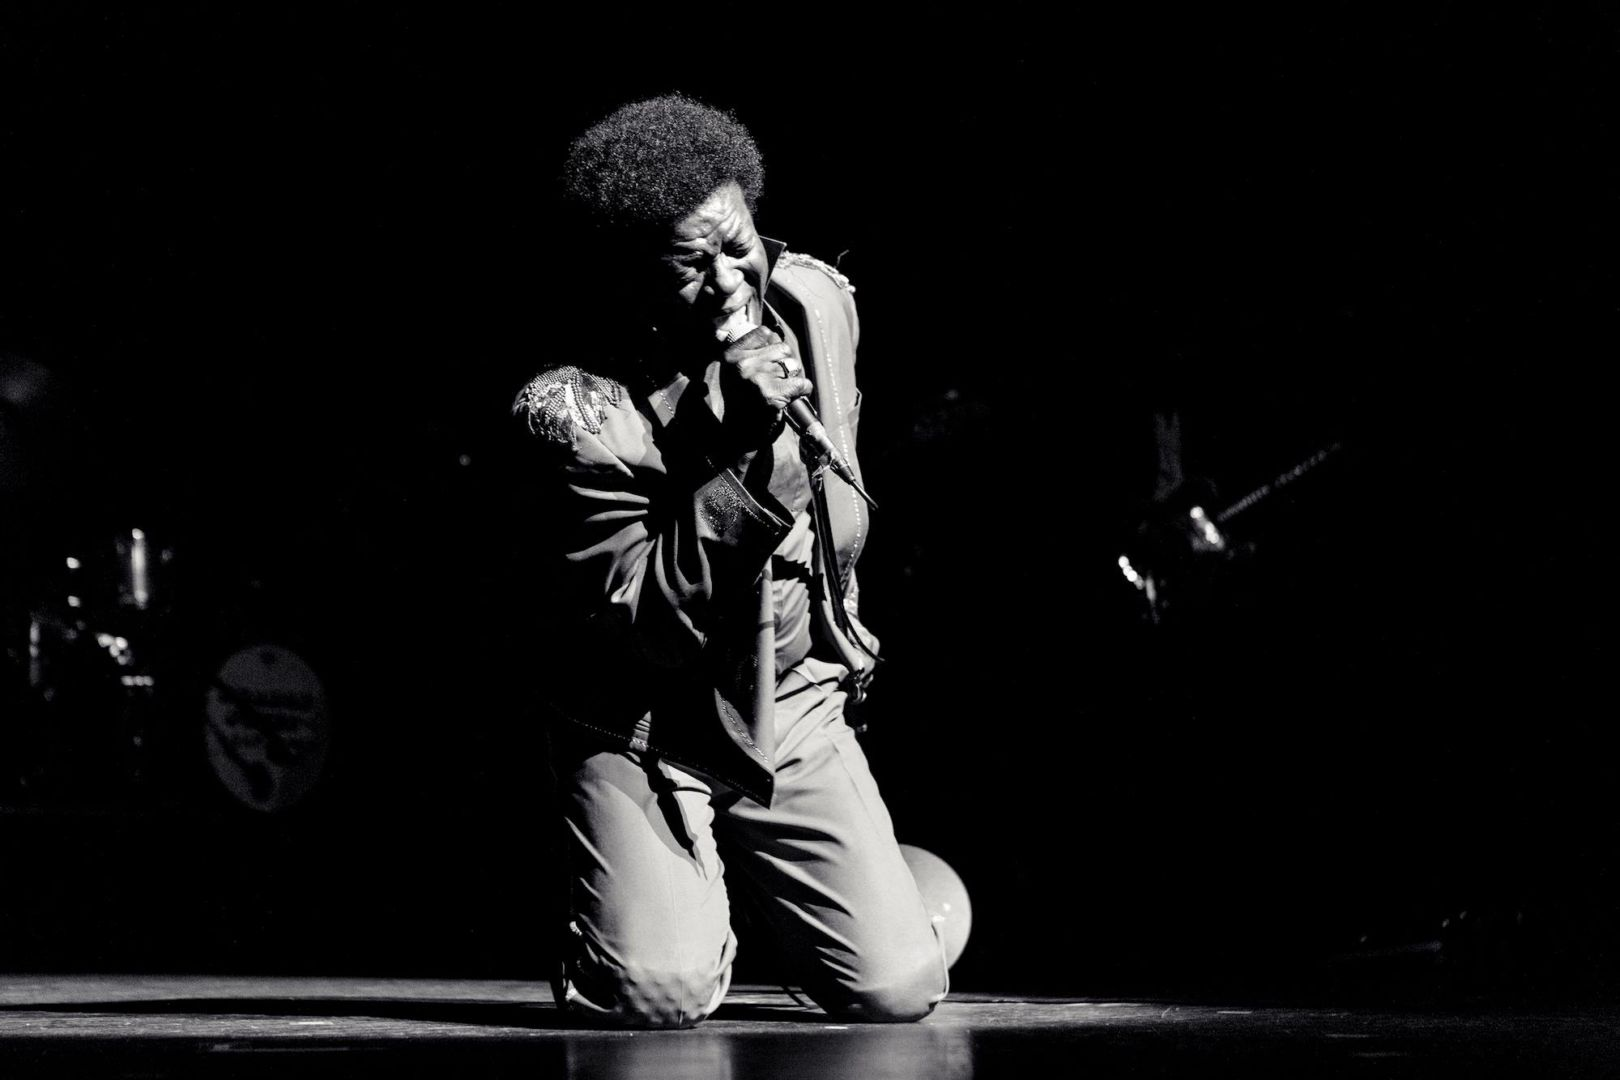 Charles Bradley – The World (is going up in Flames)